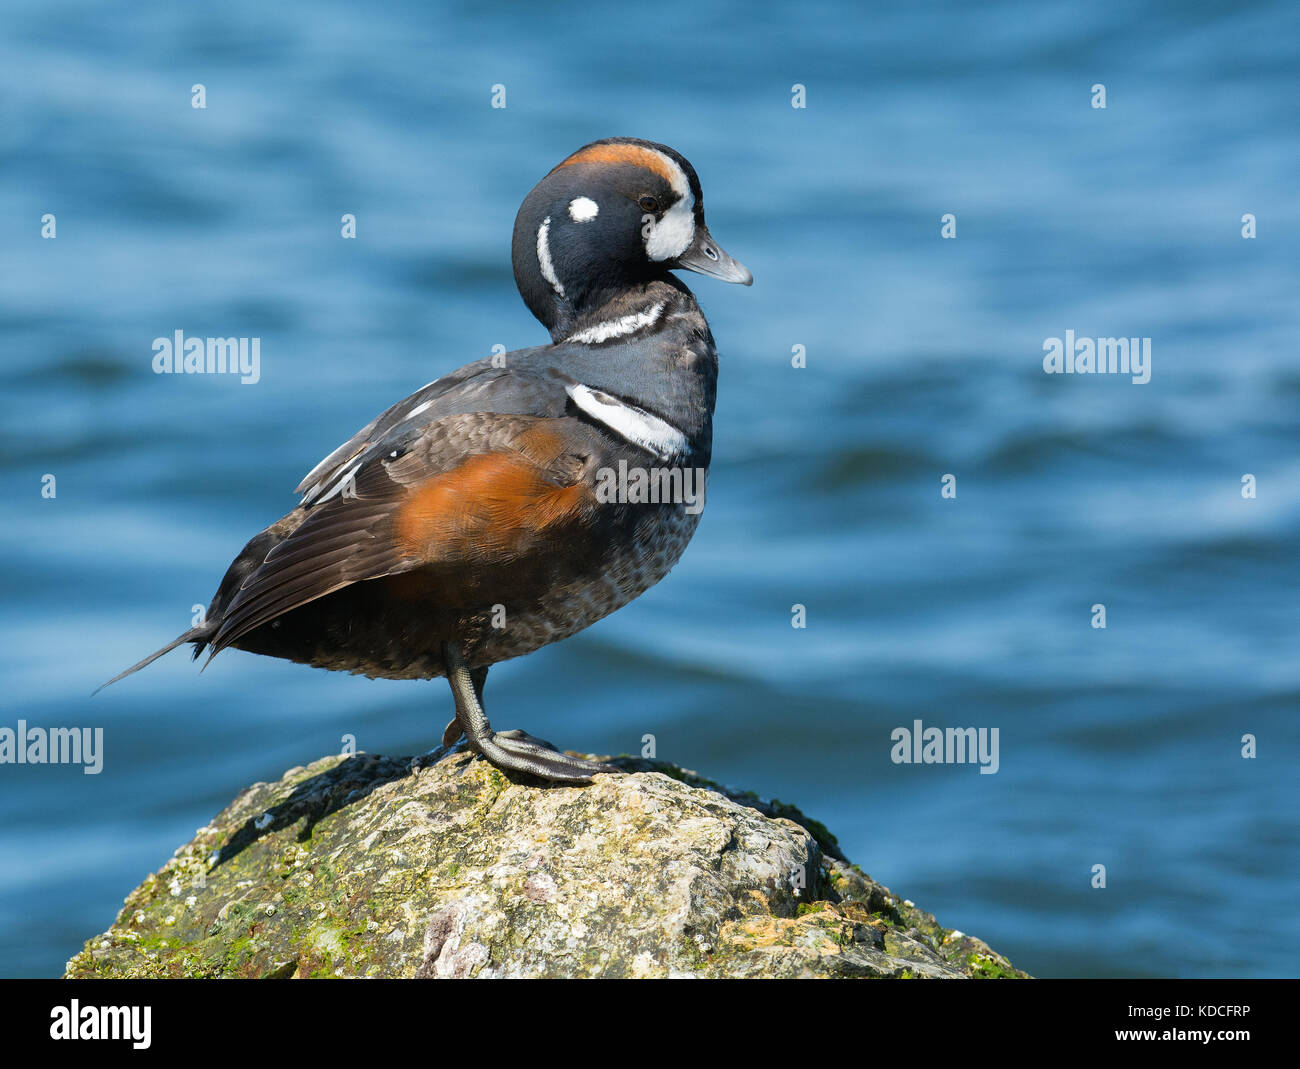 Duck Hunting Sunset Stock Photos & Duck Hunting Sunset ... - photo#21